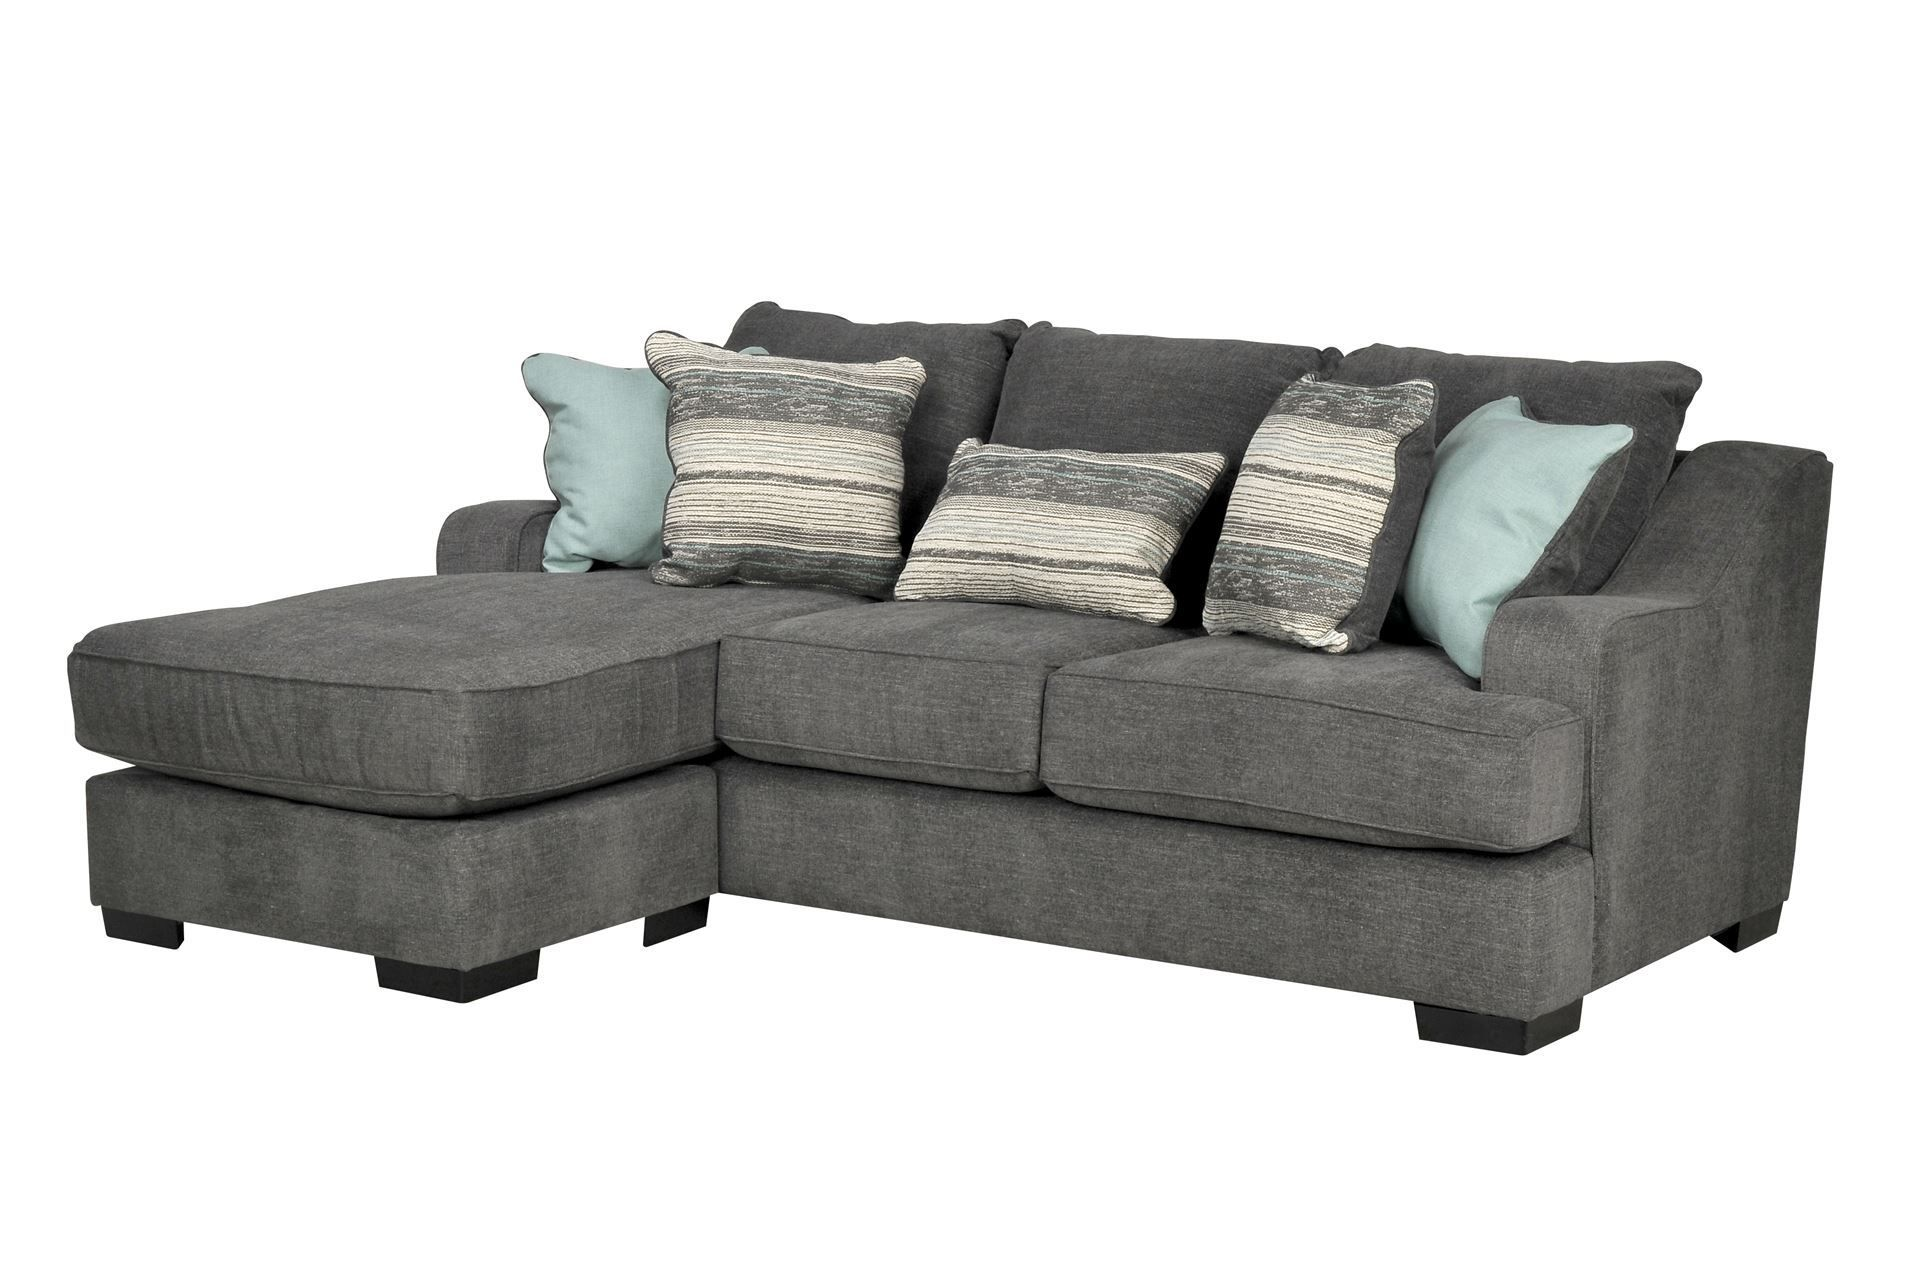 Adorable Living Spaces Couches Best Living Spaces Couches 89